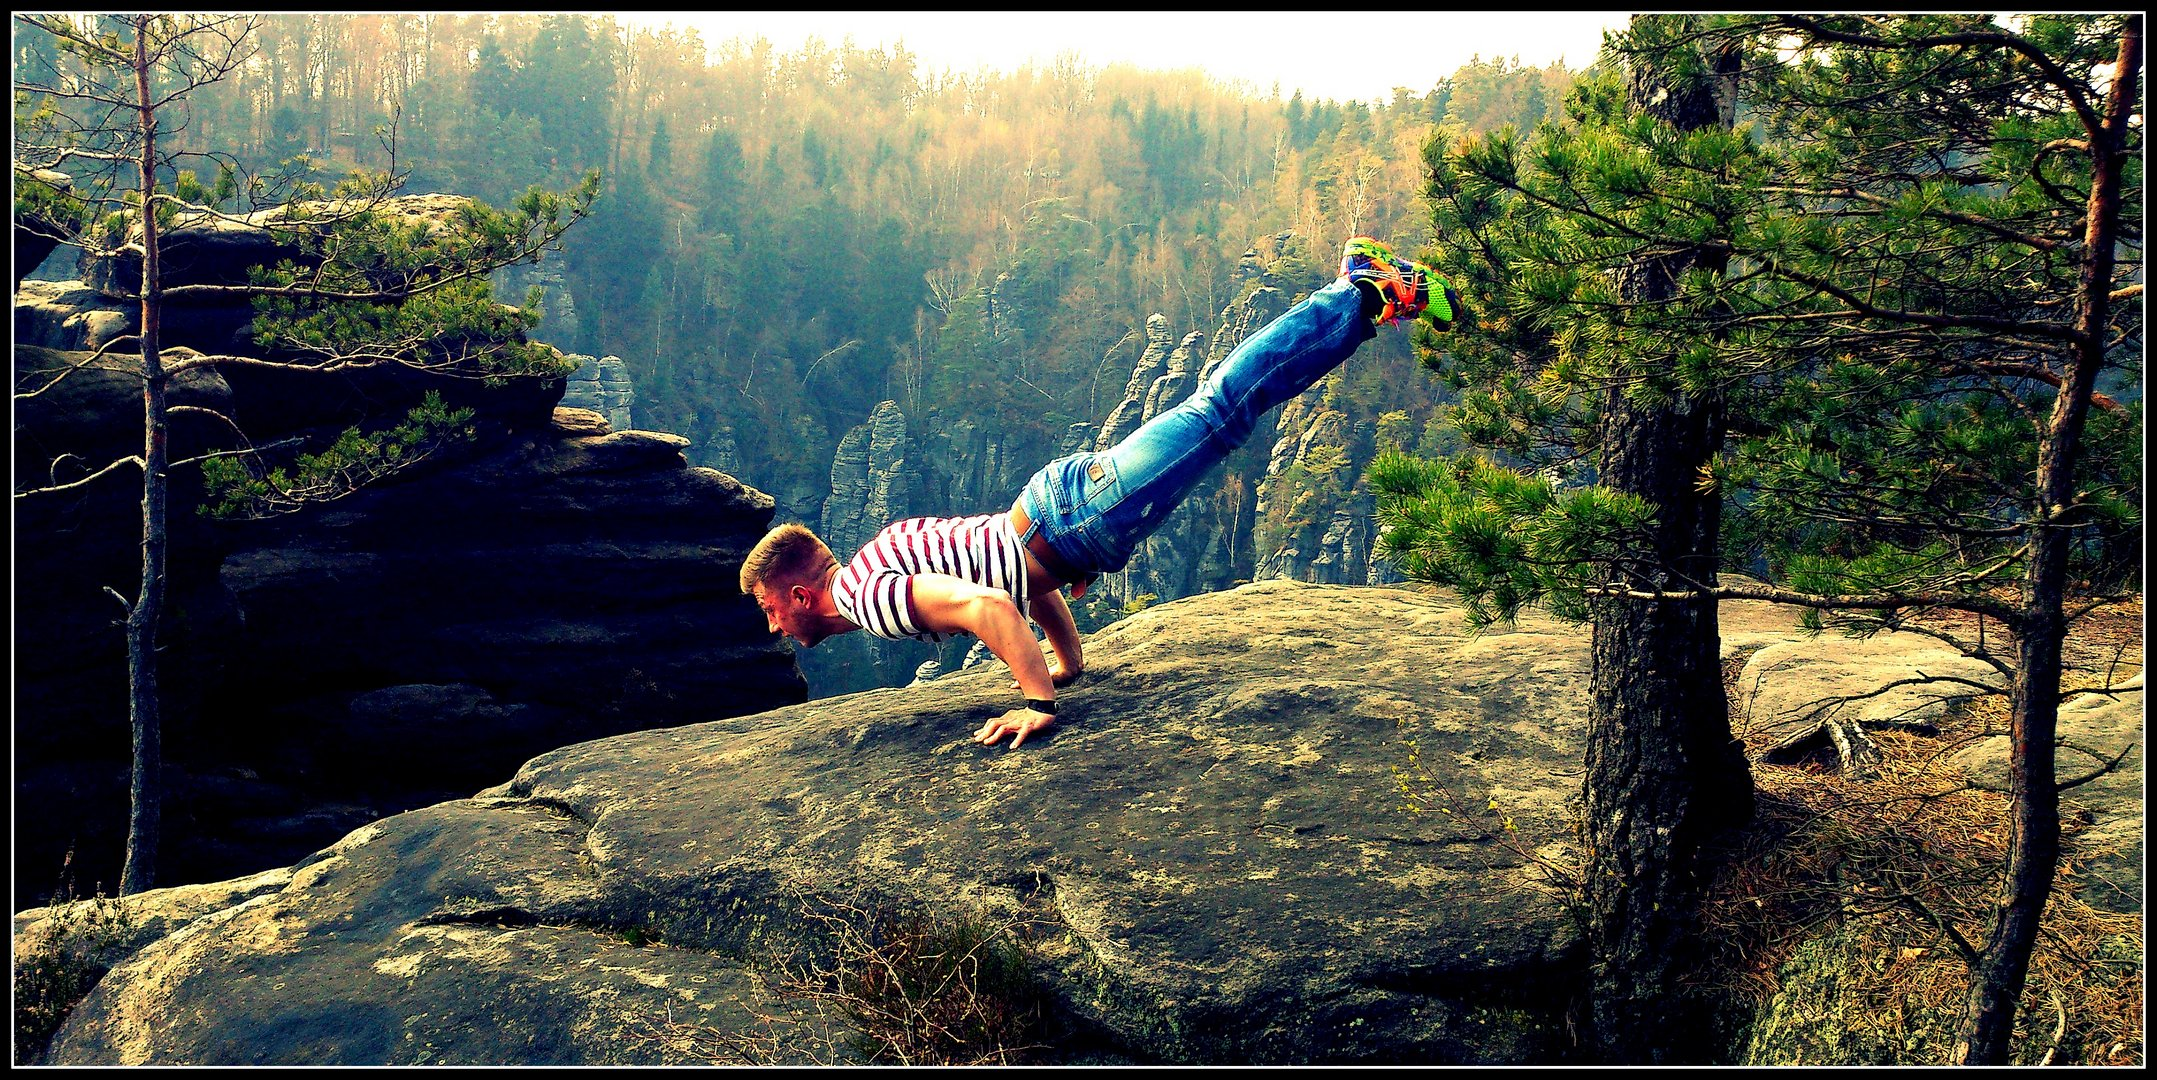 Planche on the Rock